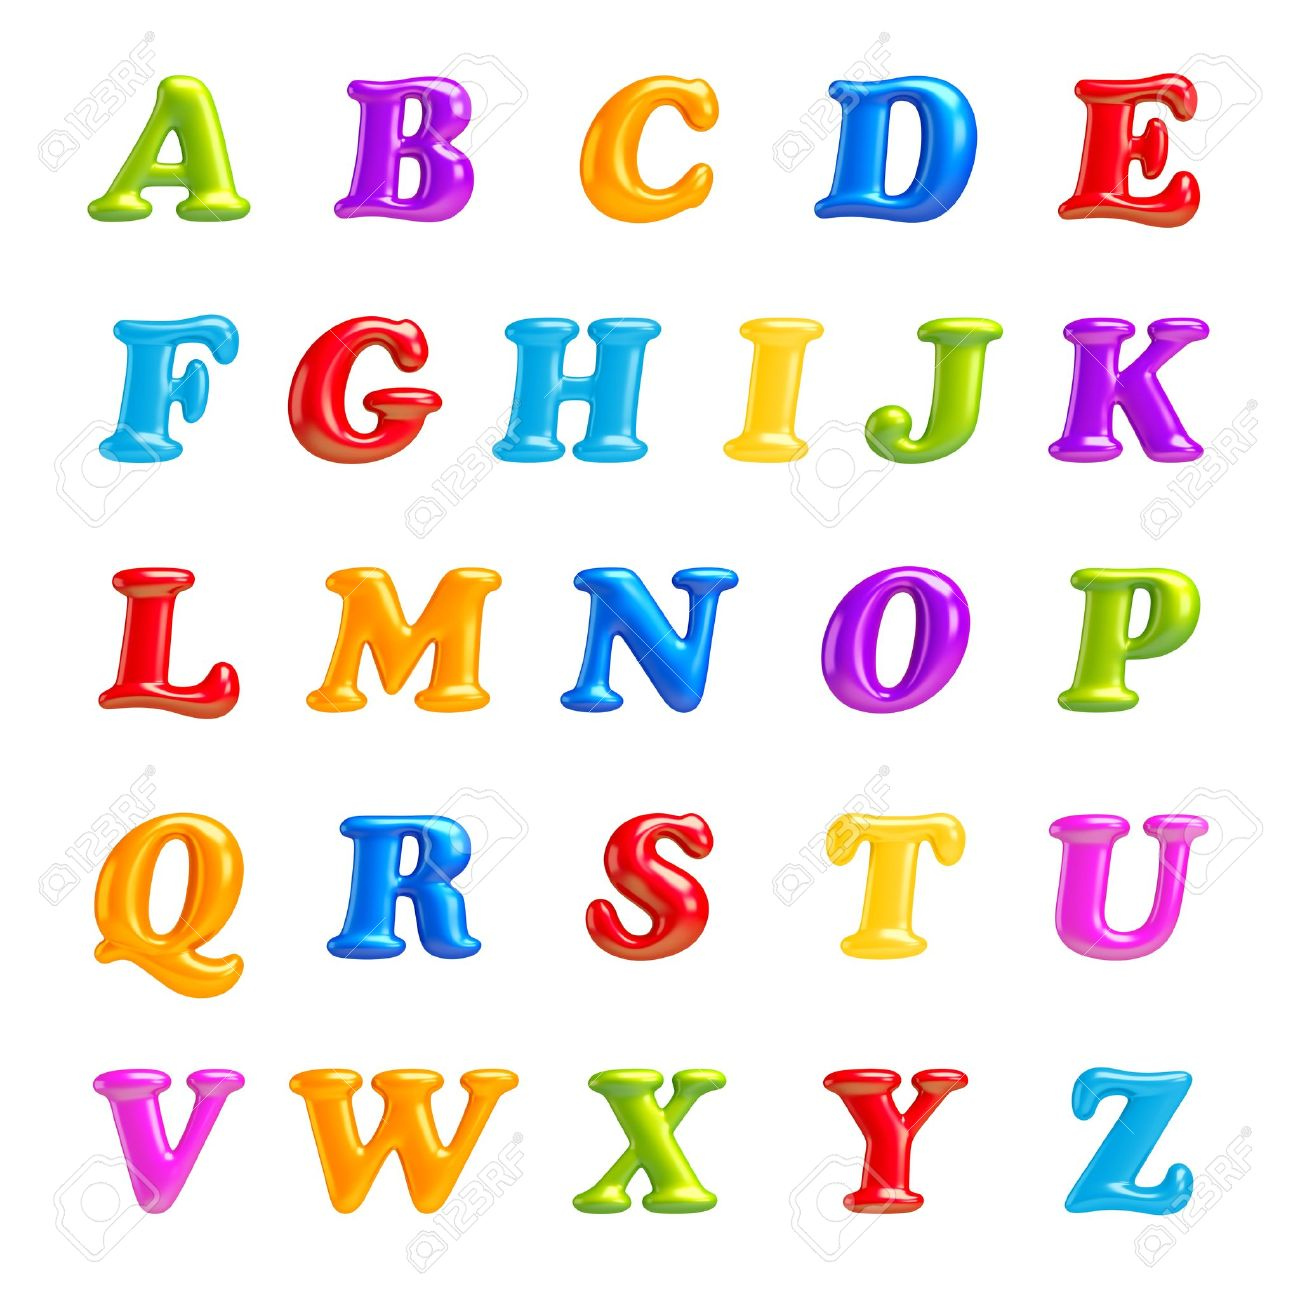 3d font creative abc collection isolated alphabet type letters with numbers and symbols high quality clean